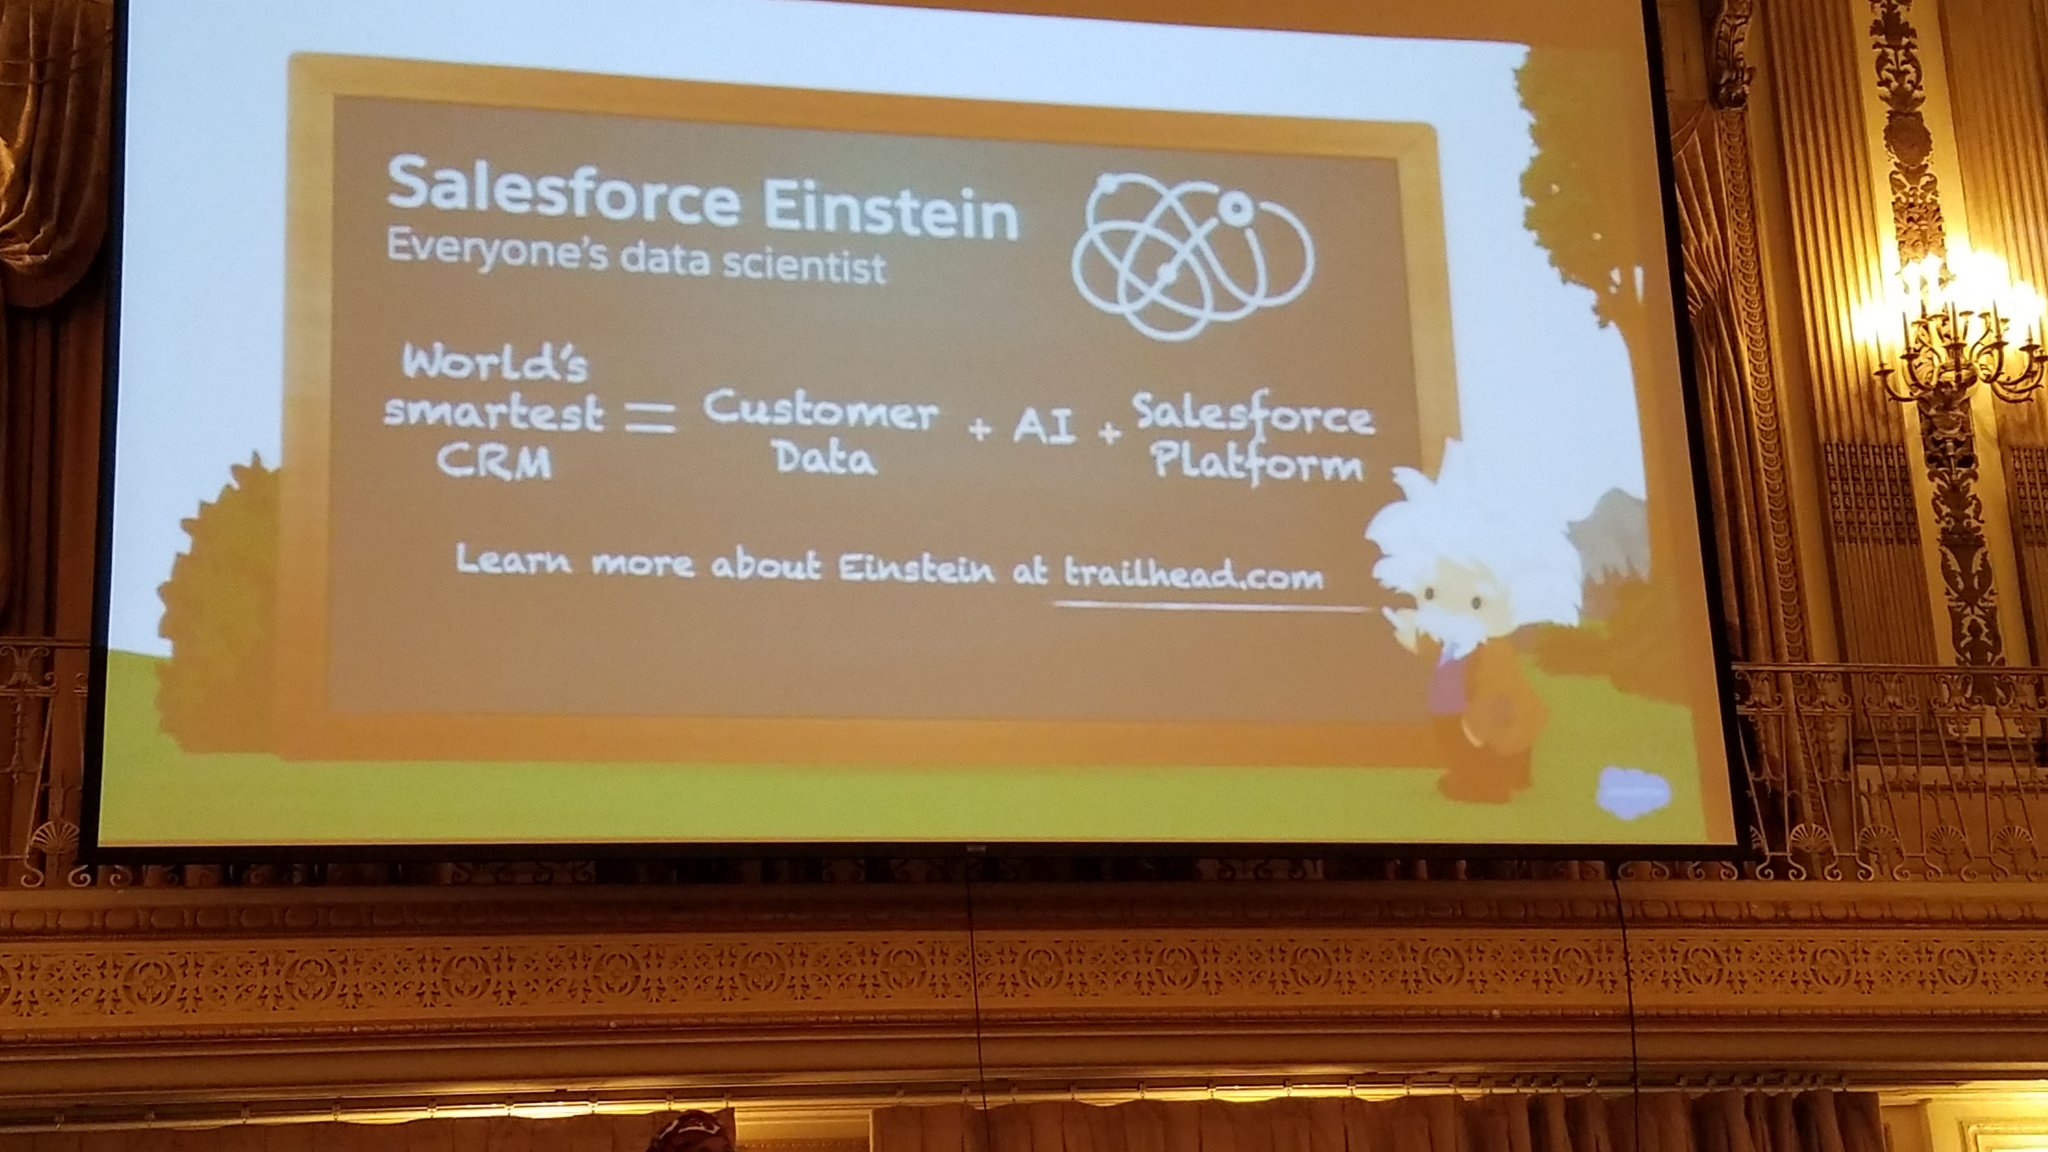 SF Einstein is the future. #MWD17 https://t.co/eHtiKauuBD